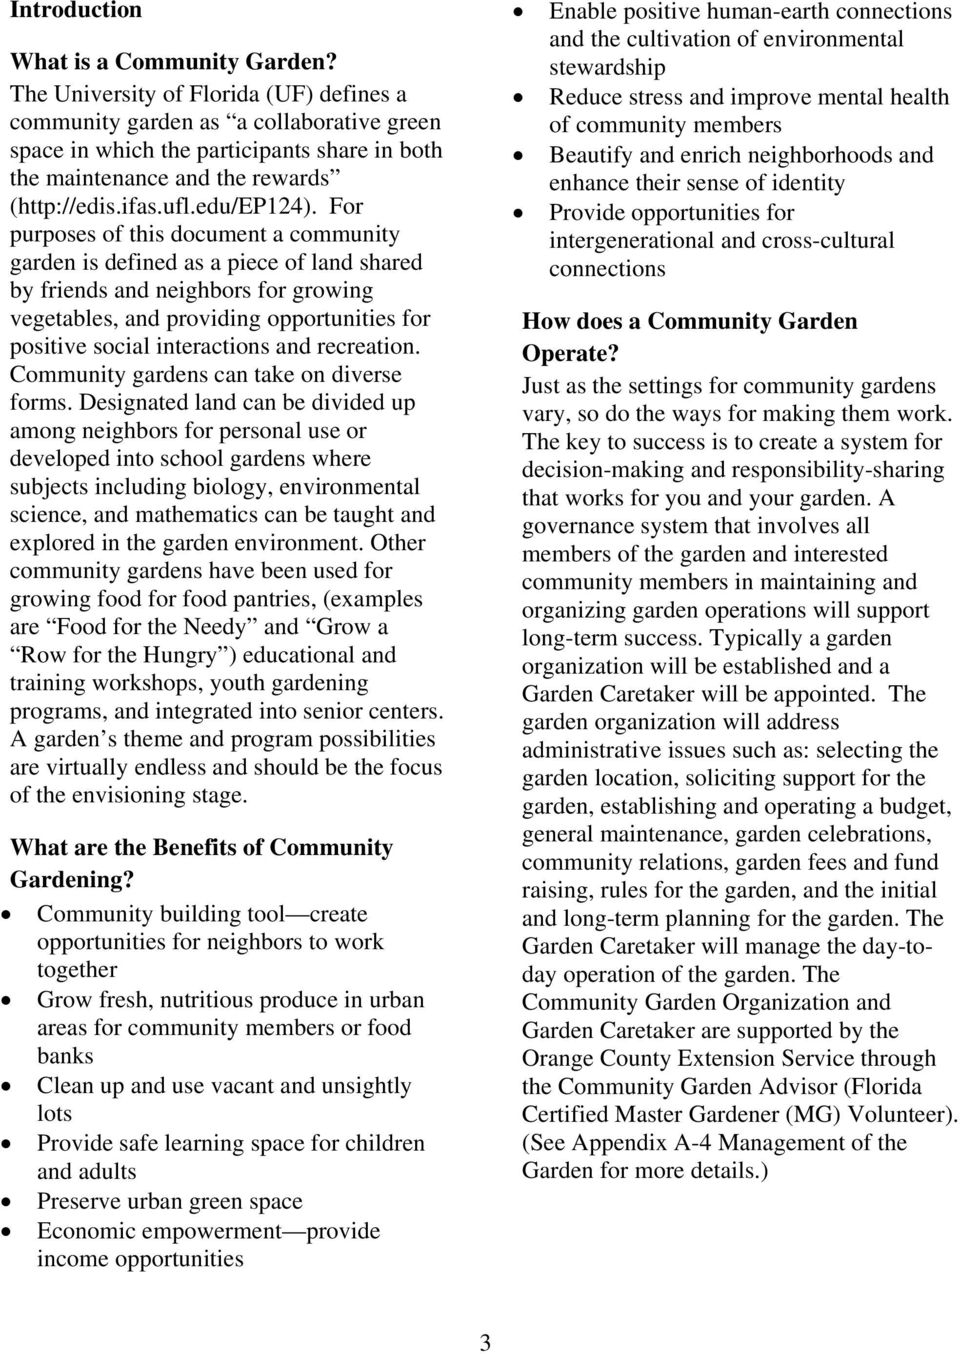 For purposes of this document a community garden is defined as a piece of land shared by friends and neighbors for growing vegetables, and providing opportunities for positive social interactions and